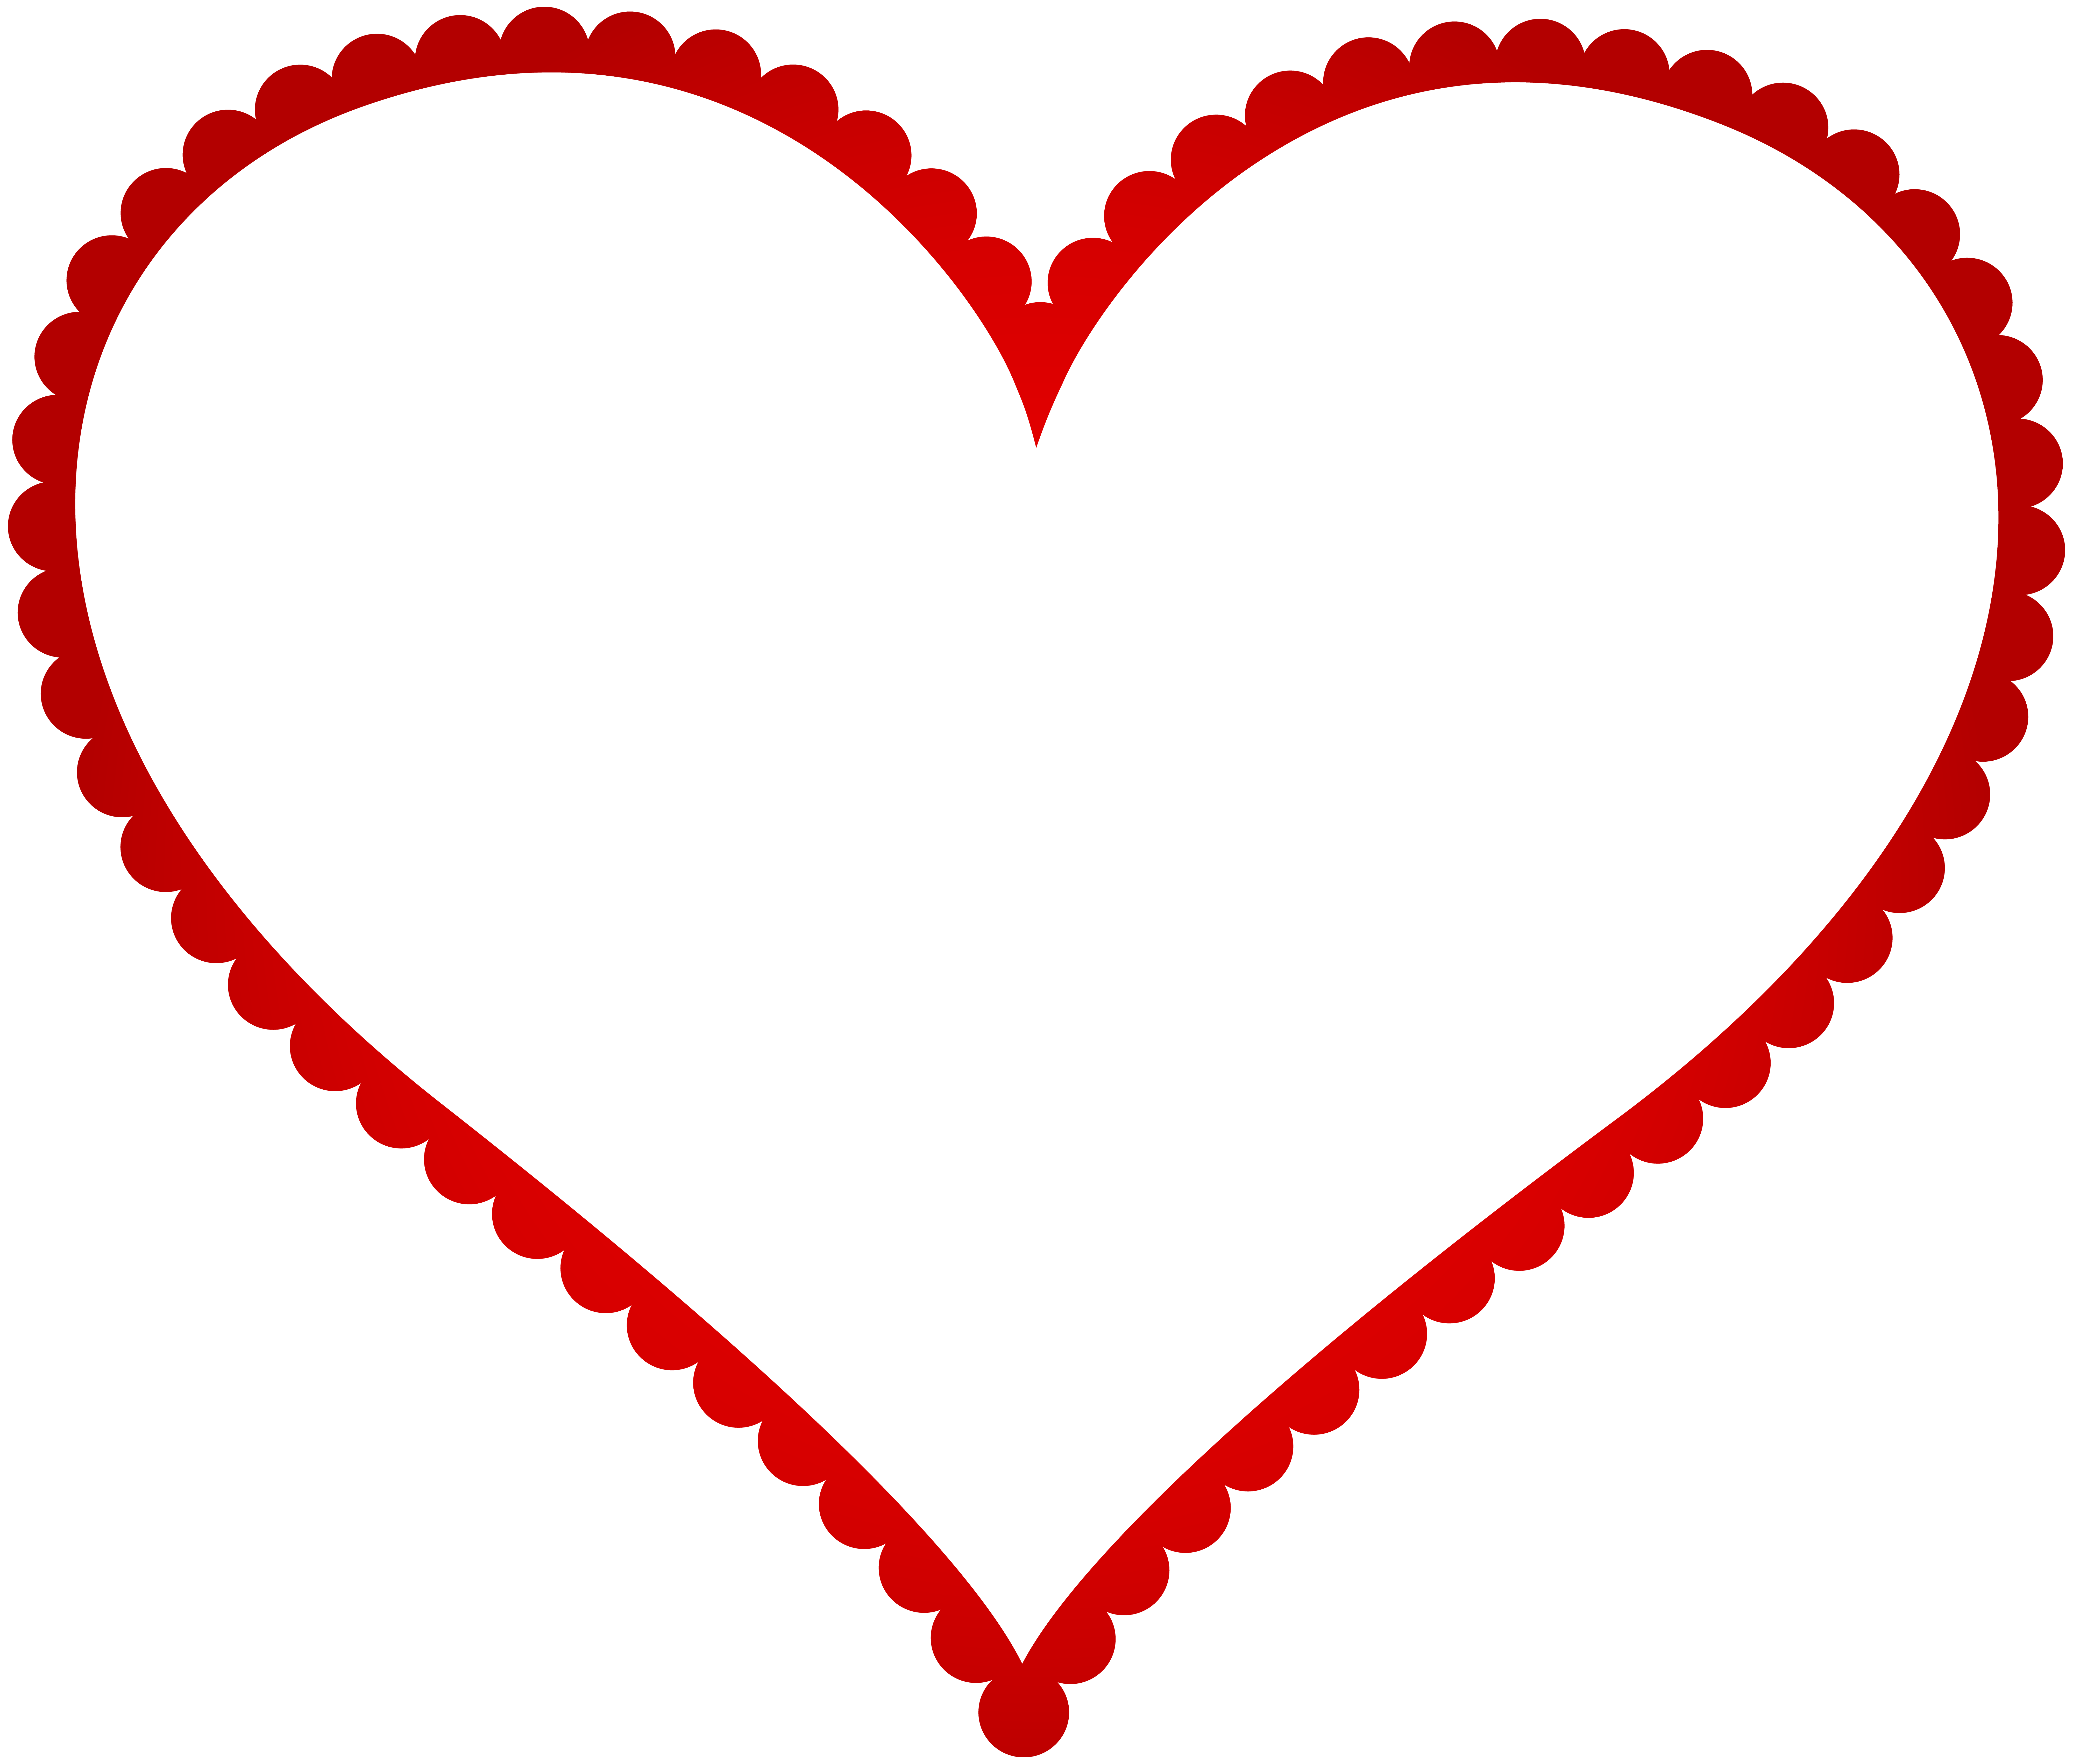 vector black and white Hearts border clipart. Red heart frame transparent